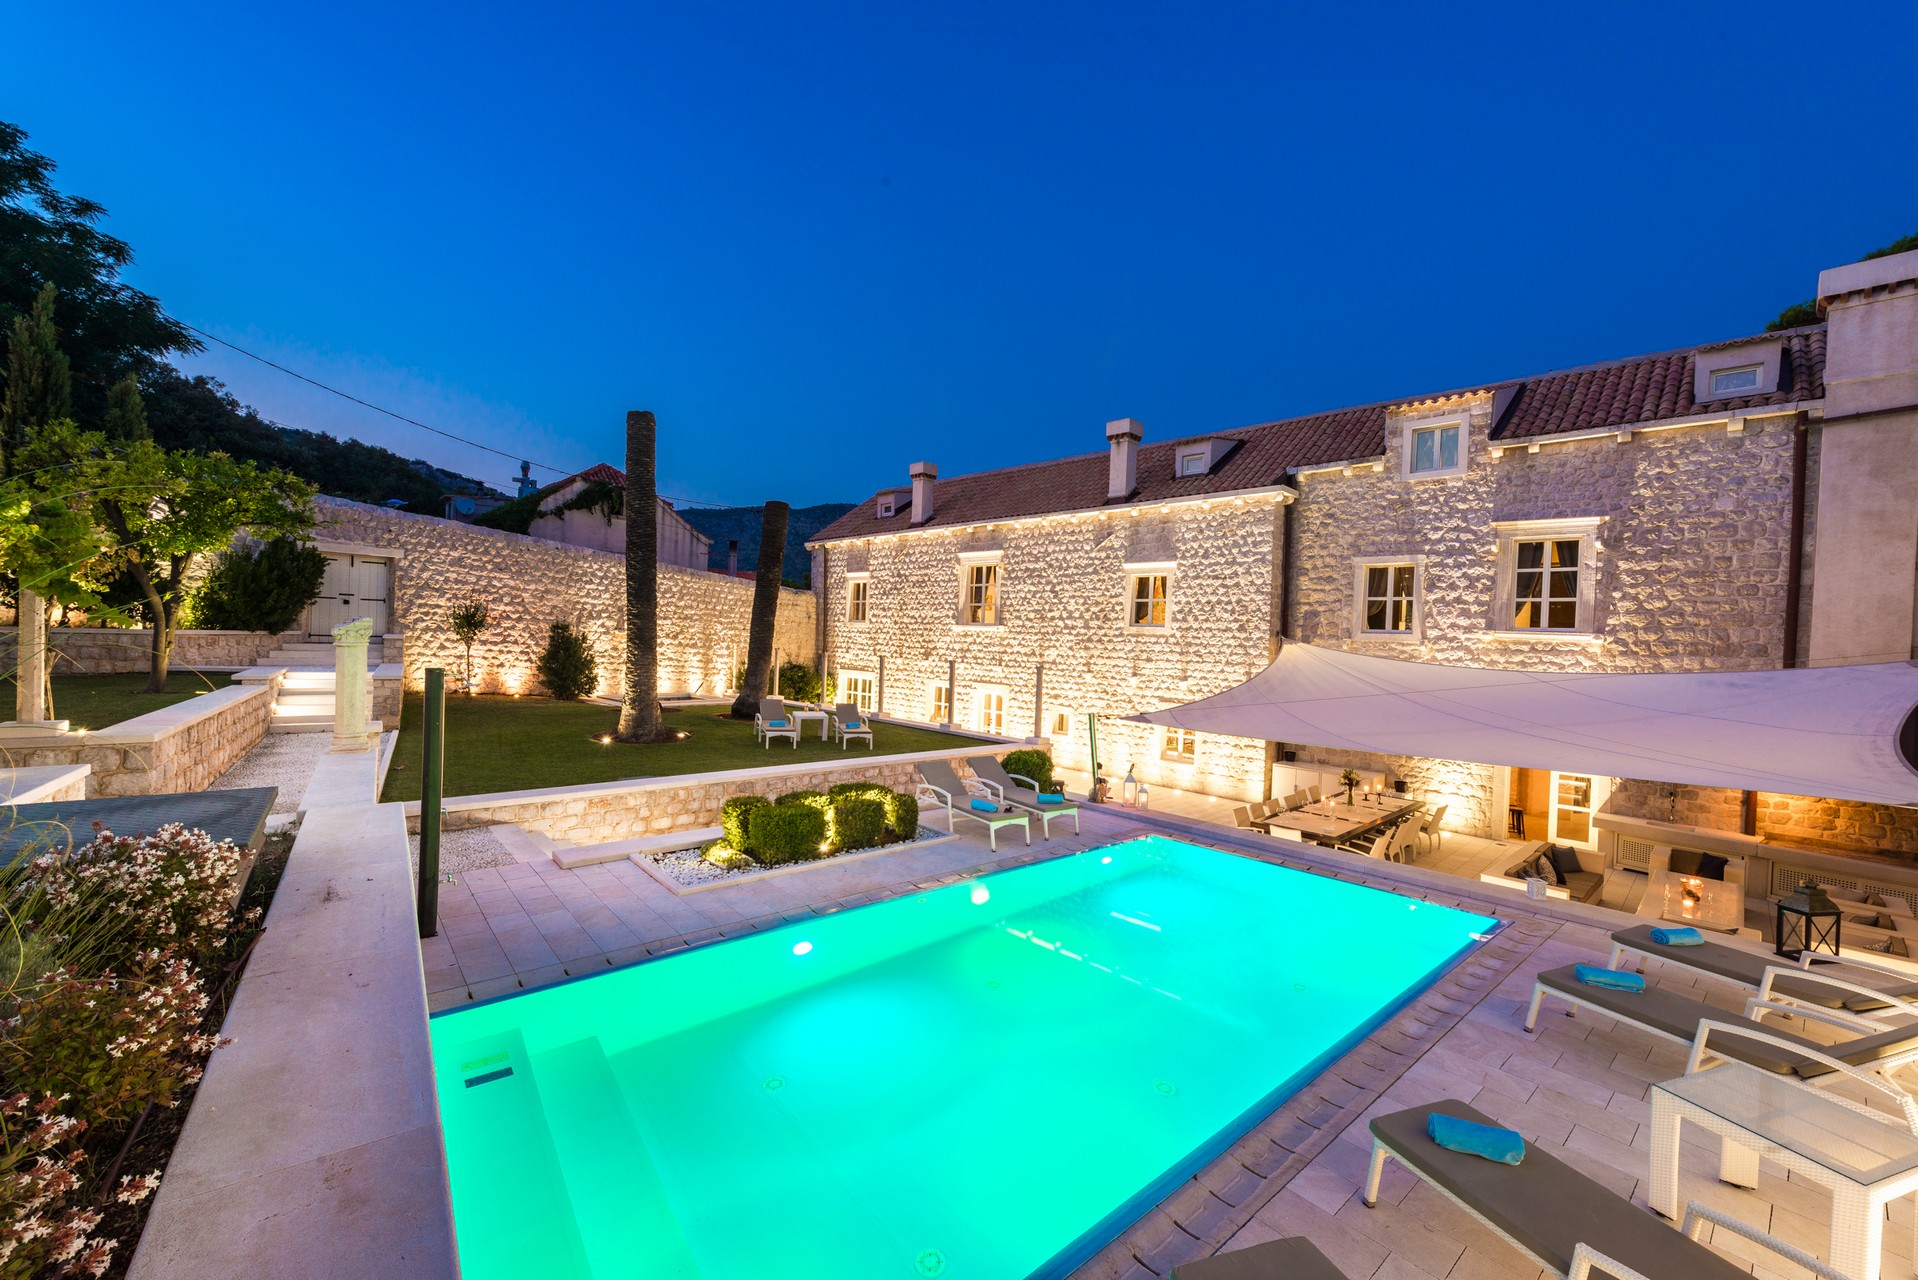 villas in hvar croatia